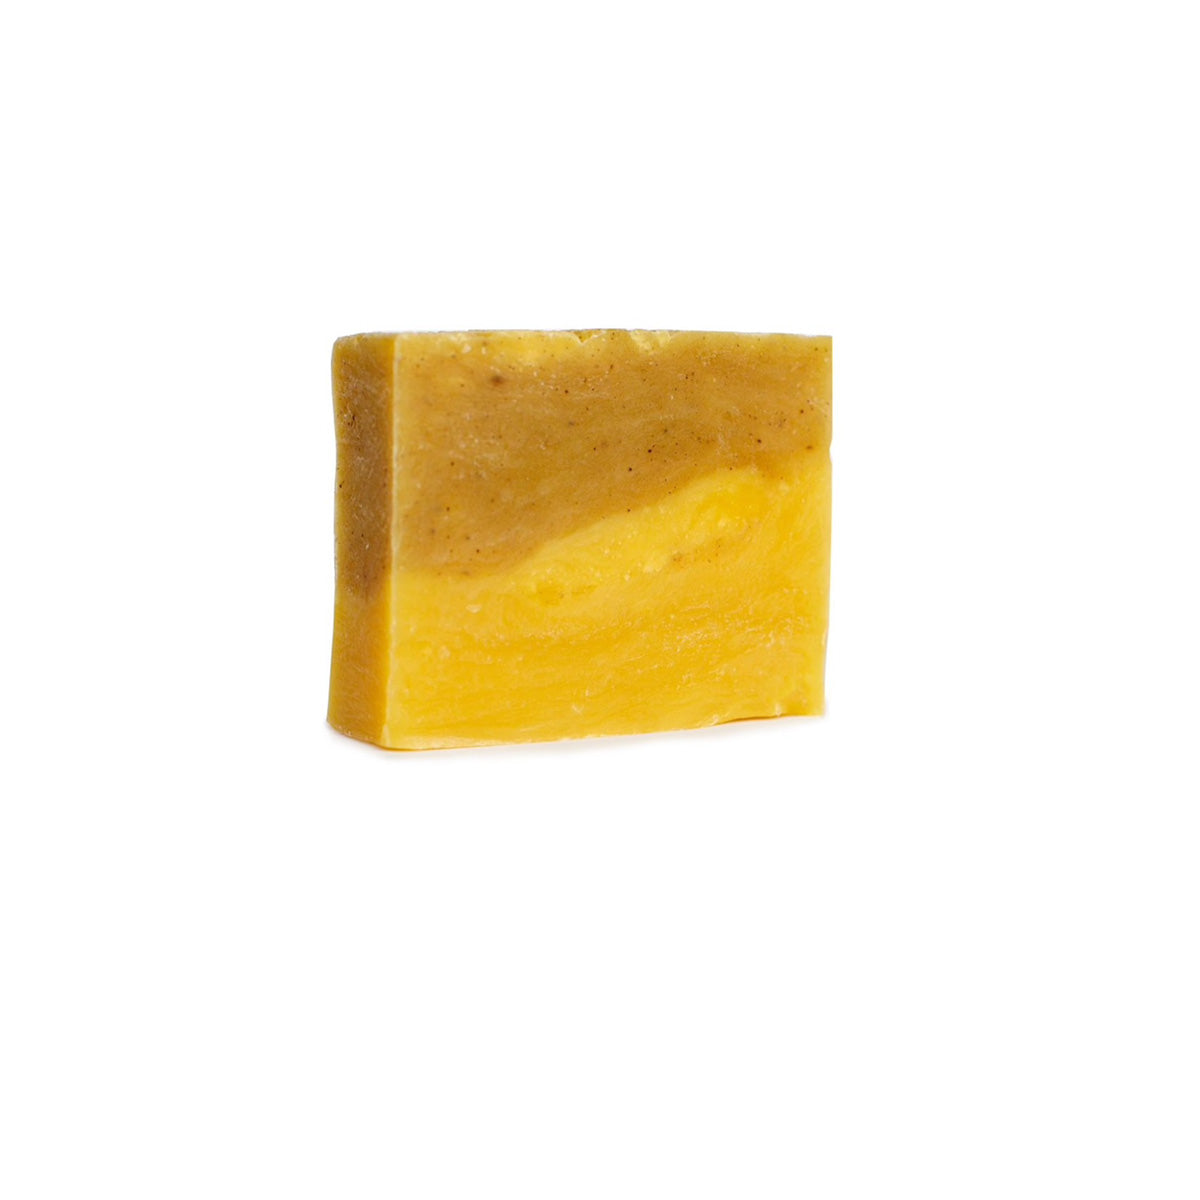 Sunflower Soap Bar